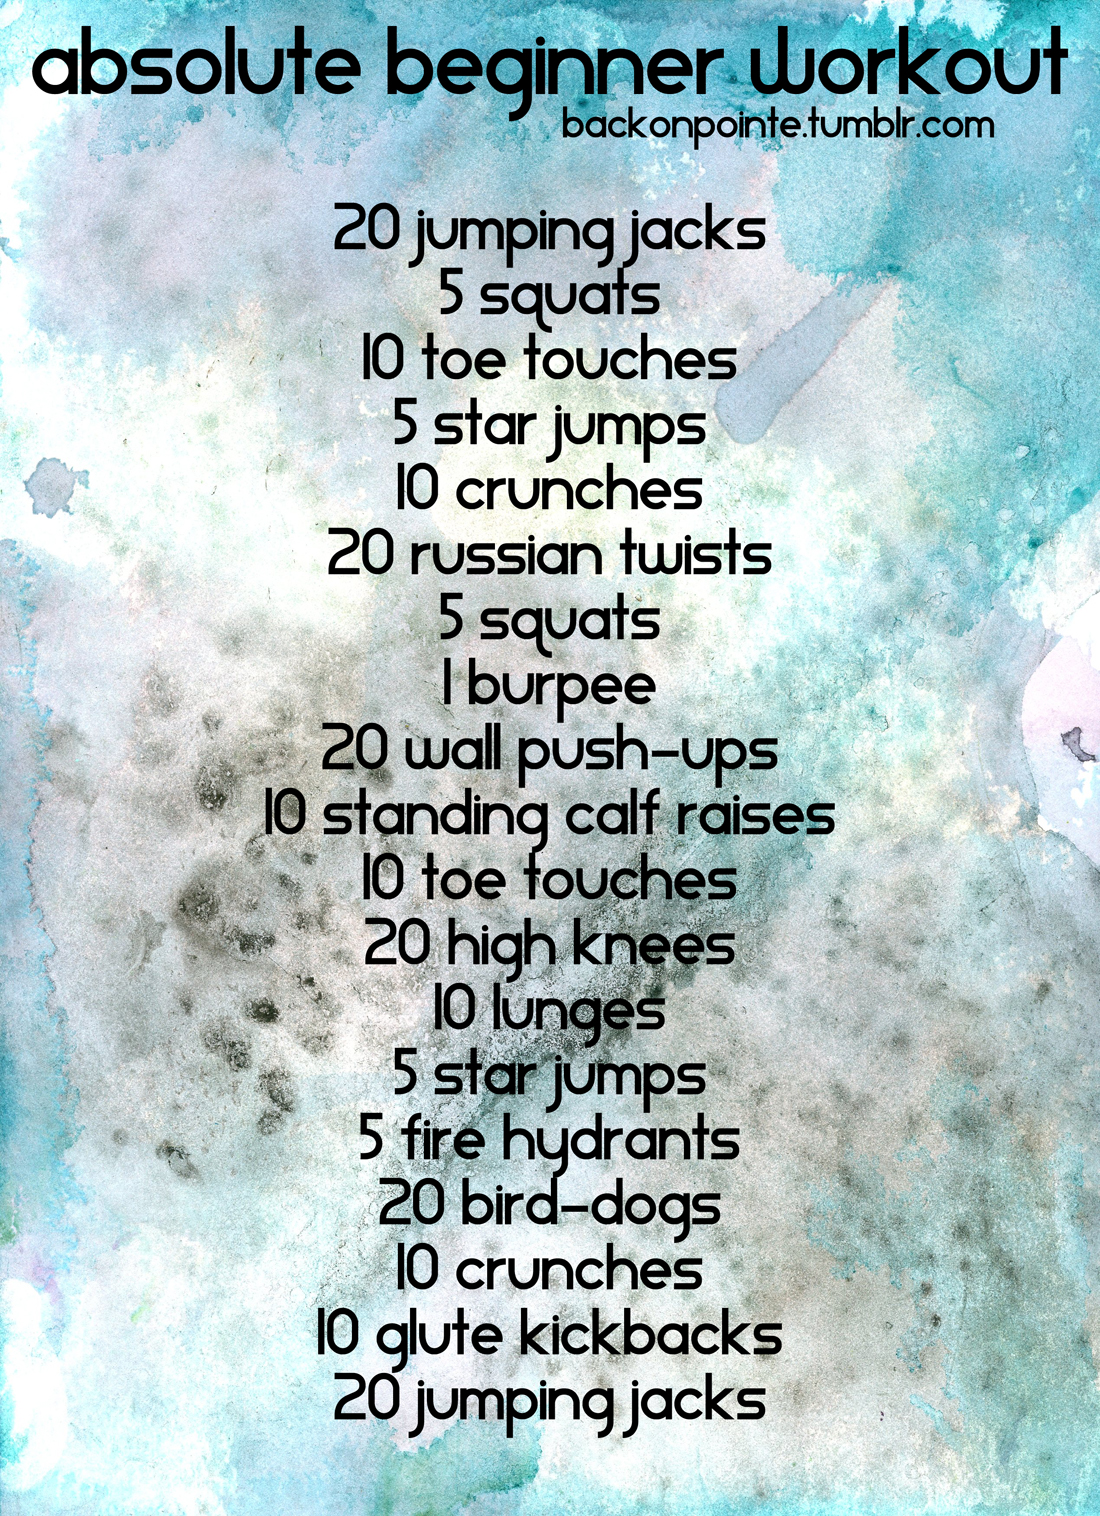 5 easy workouts to get abs